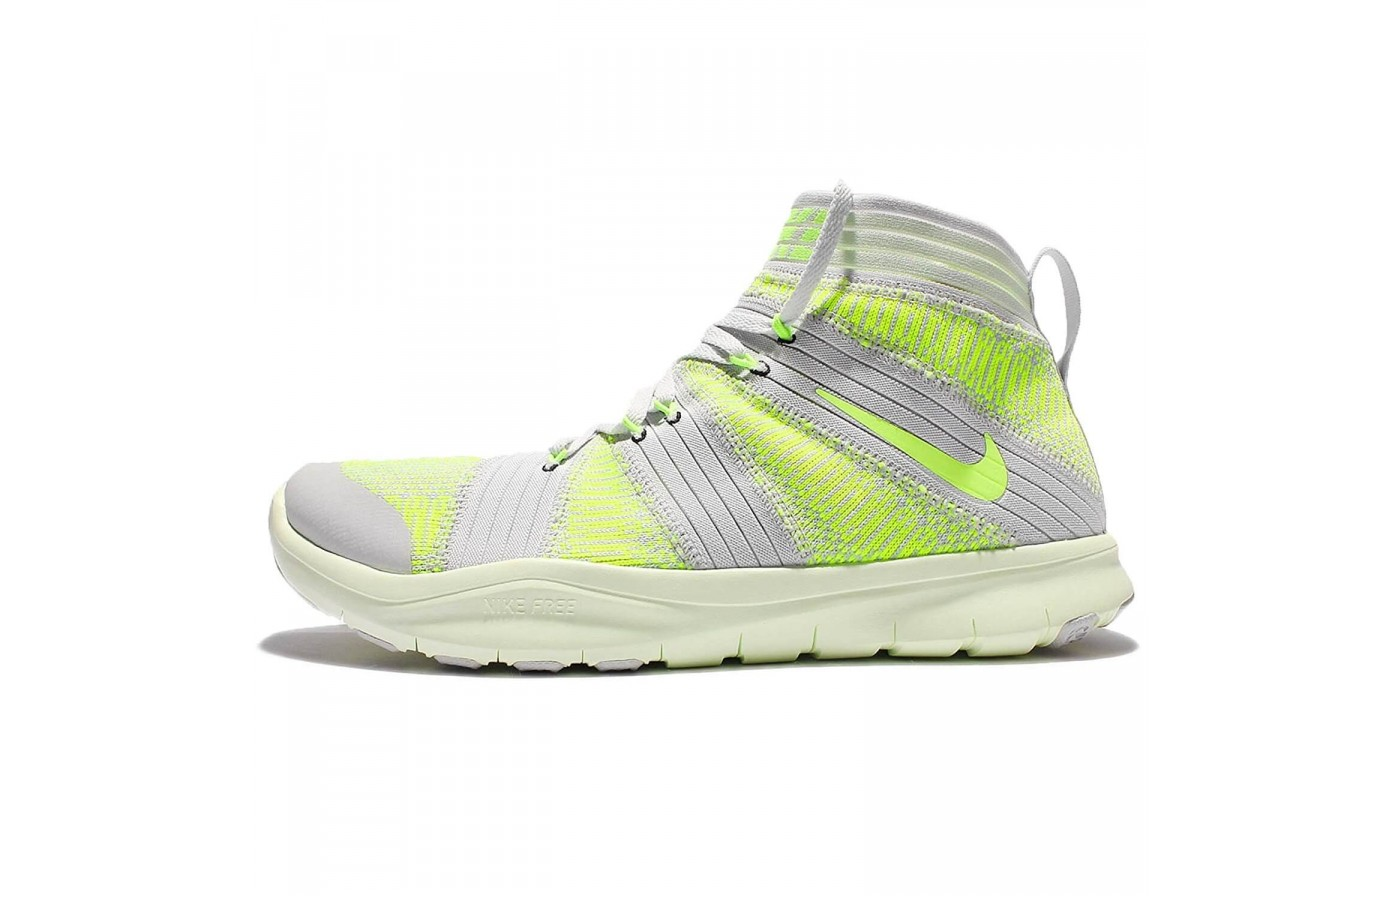 The Nike Free Train Virtue features a sock-like ankle collar